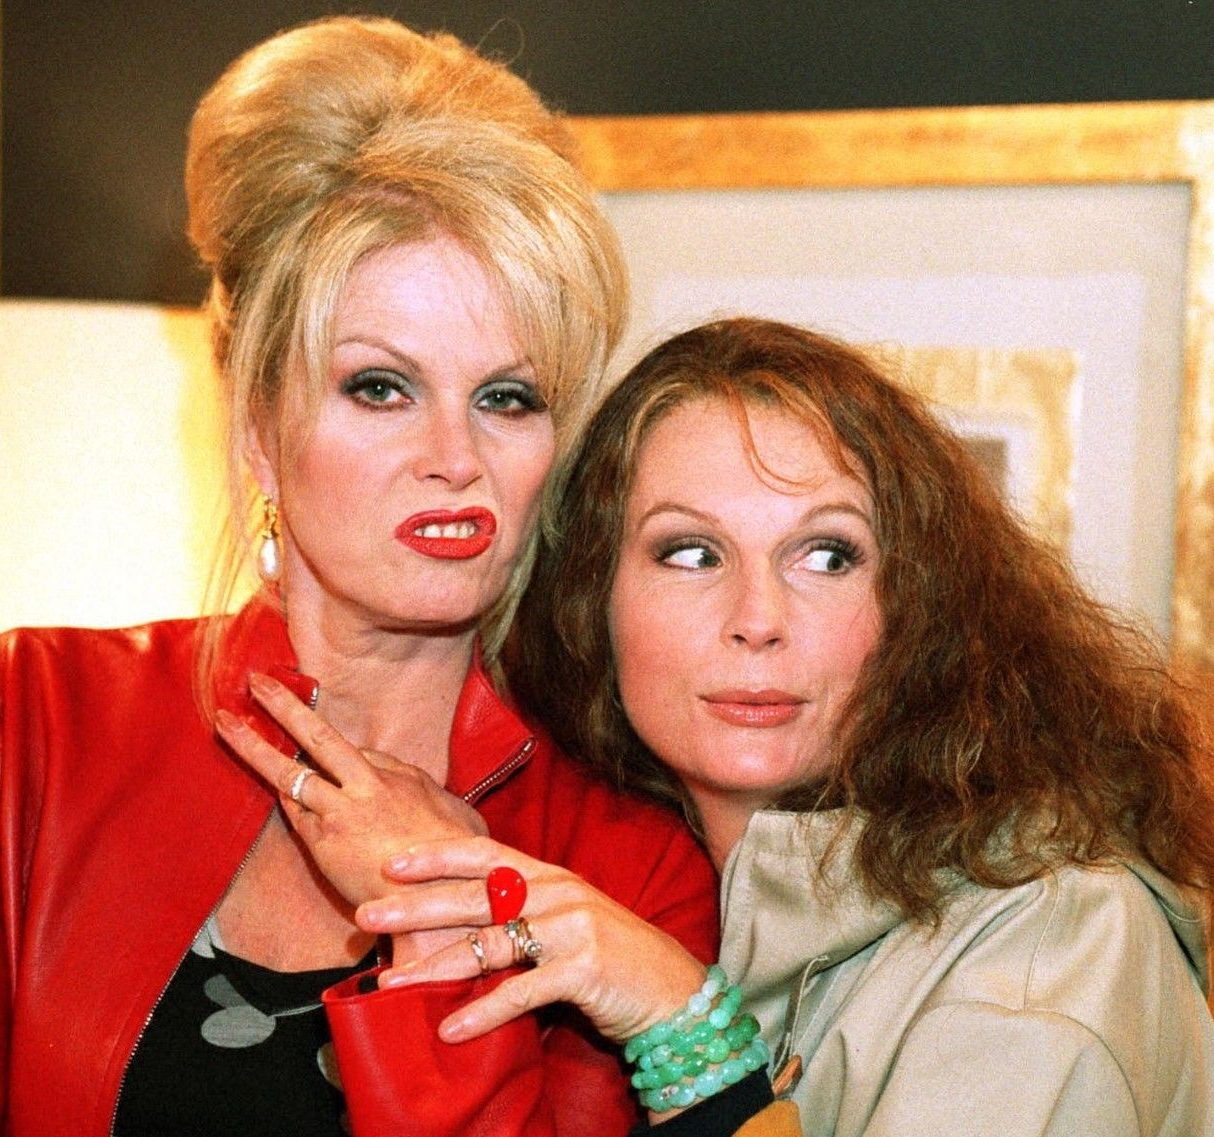 a5c8d32c5c2e4670d8a9a65ec8fcec7d e1623923218448 Absolutely Fabulous Could Not Be Made In Today's 'Sensitive' Climate, Says Jennifer Saunders